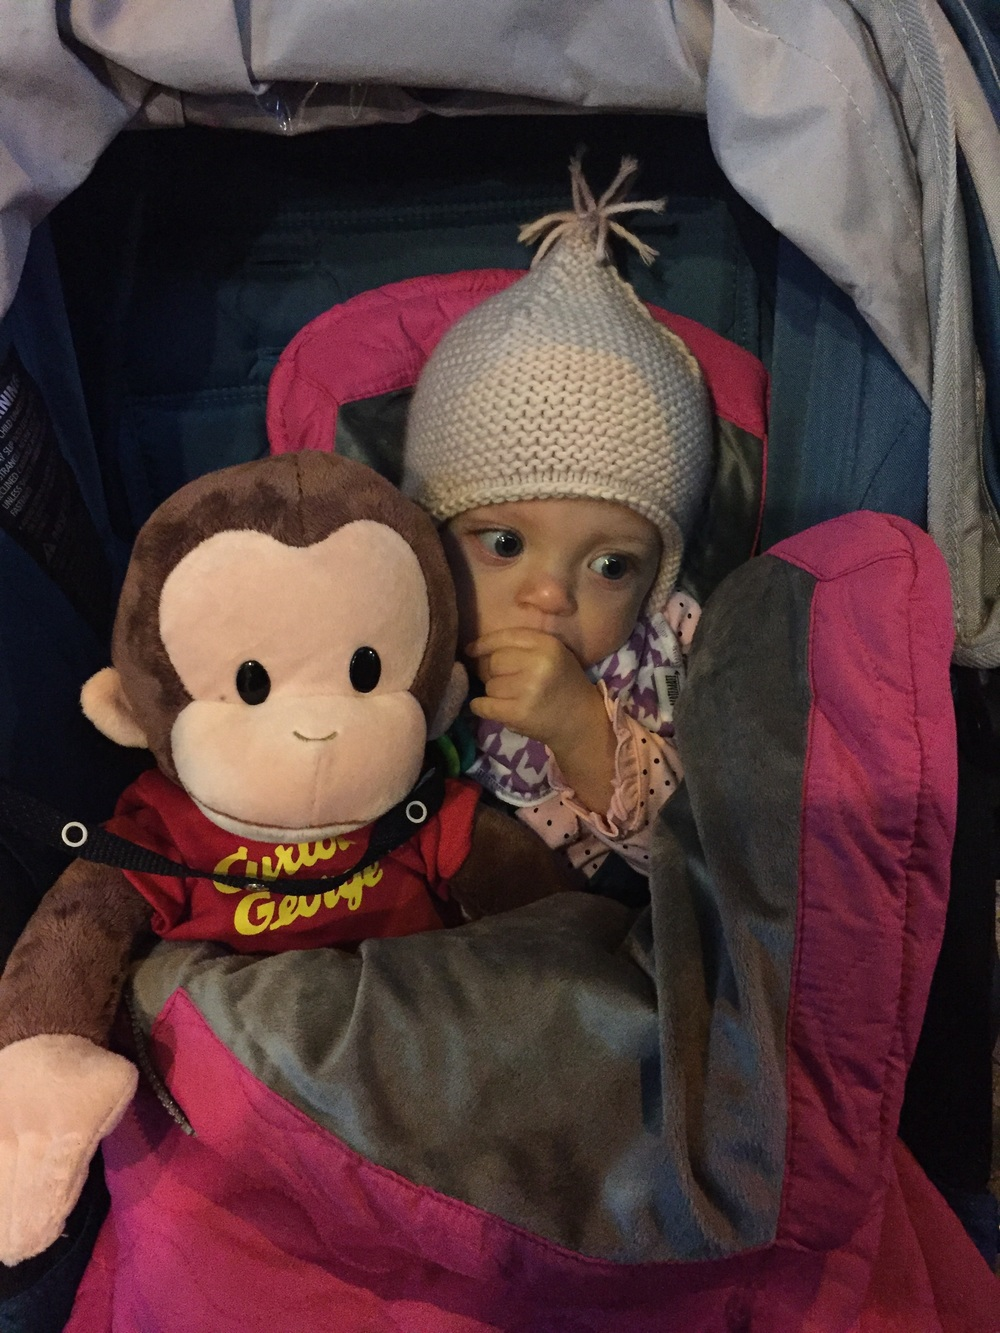 Lucie's traveling buddy.